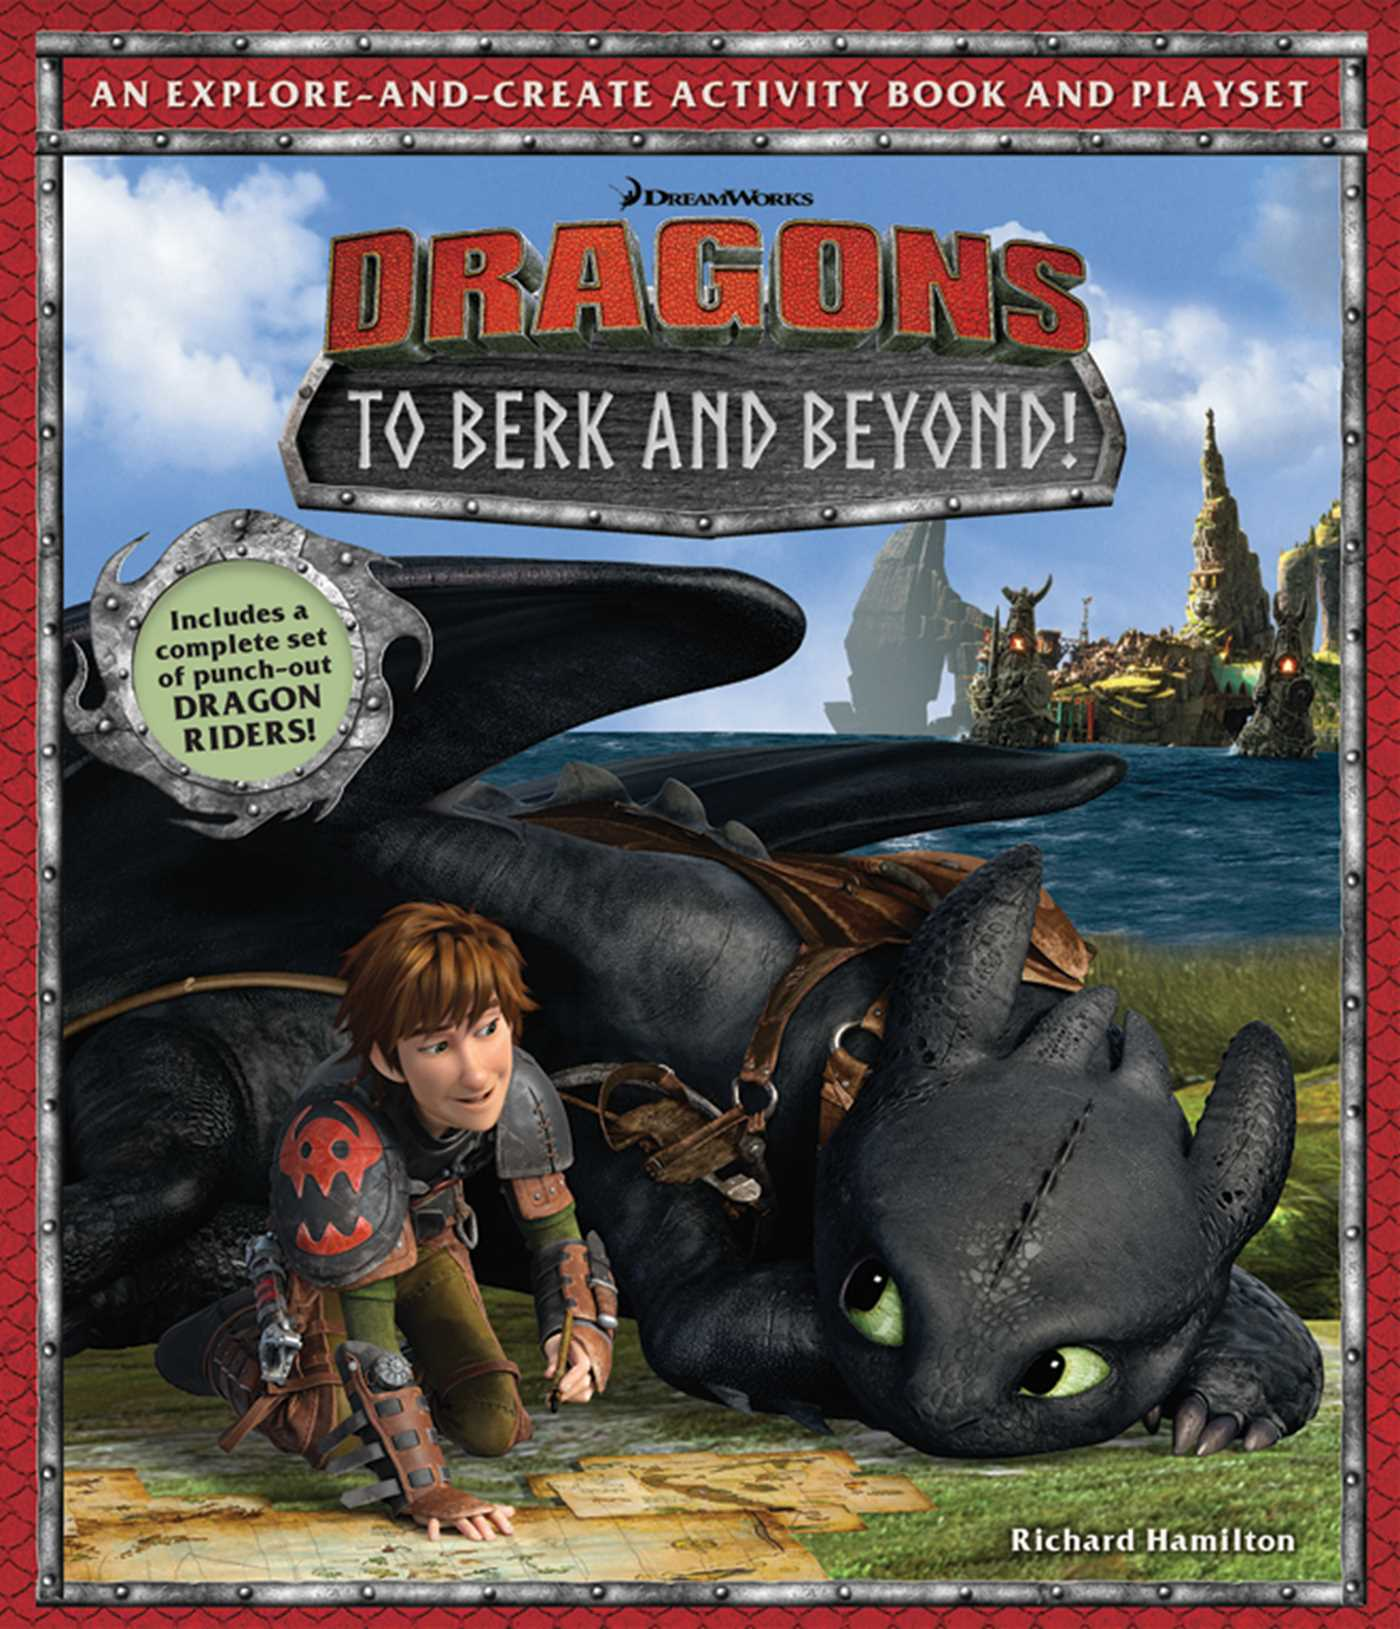 dreamworks dragons  to berk and beyond